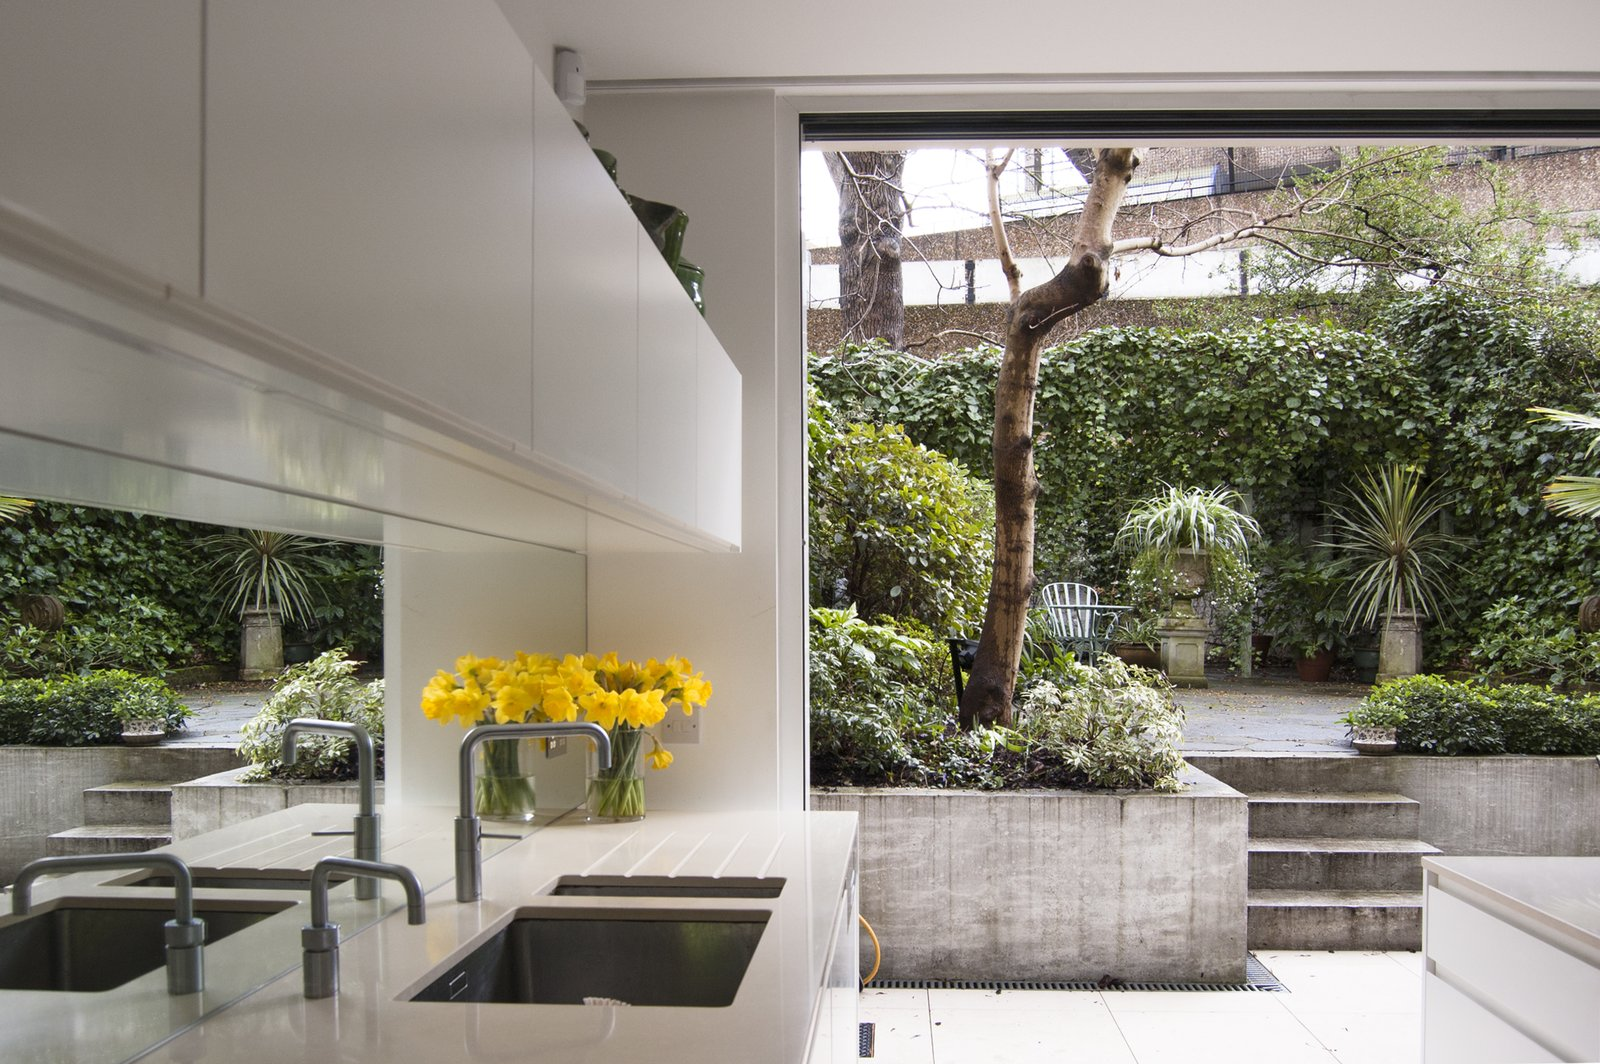 The brutalist council estate to the rear is viewed as a found-object artwork through a new cast-concrete and stark white frame. Tagged: Kitchen, White Cabinet, Mirror Backsplashe, Ceramic Tile Floor, and Undermount Sink.  Soupçon Brut by WILLIAM TOZER Associates